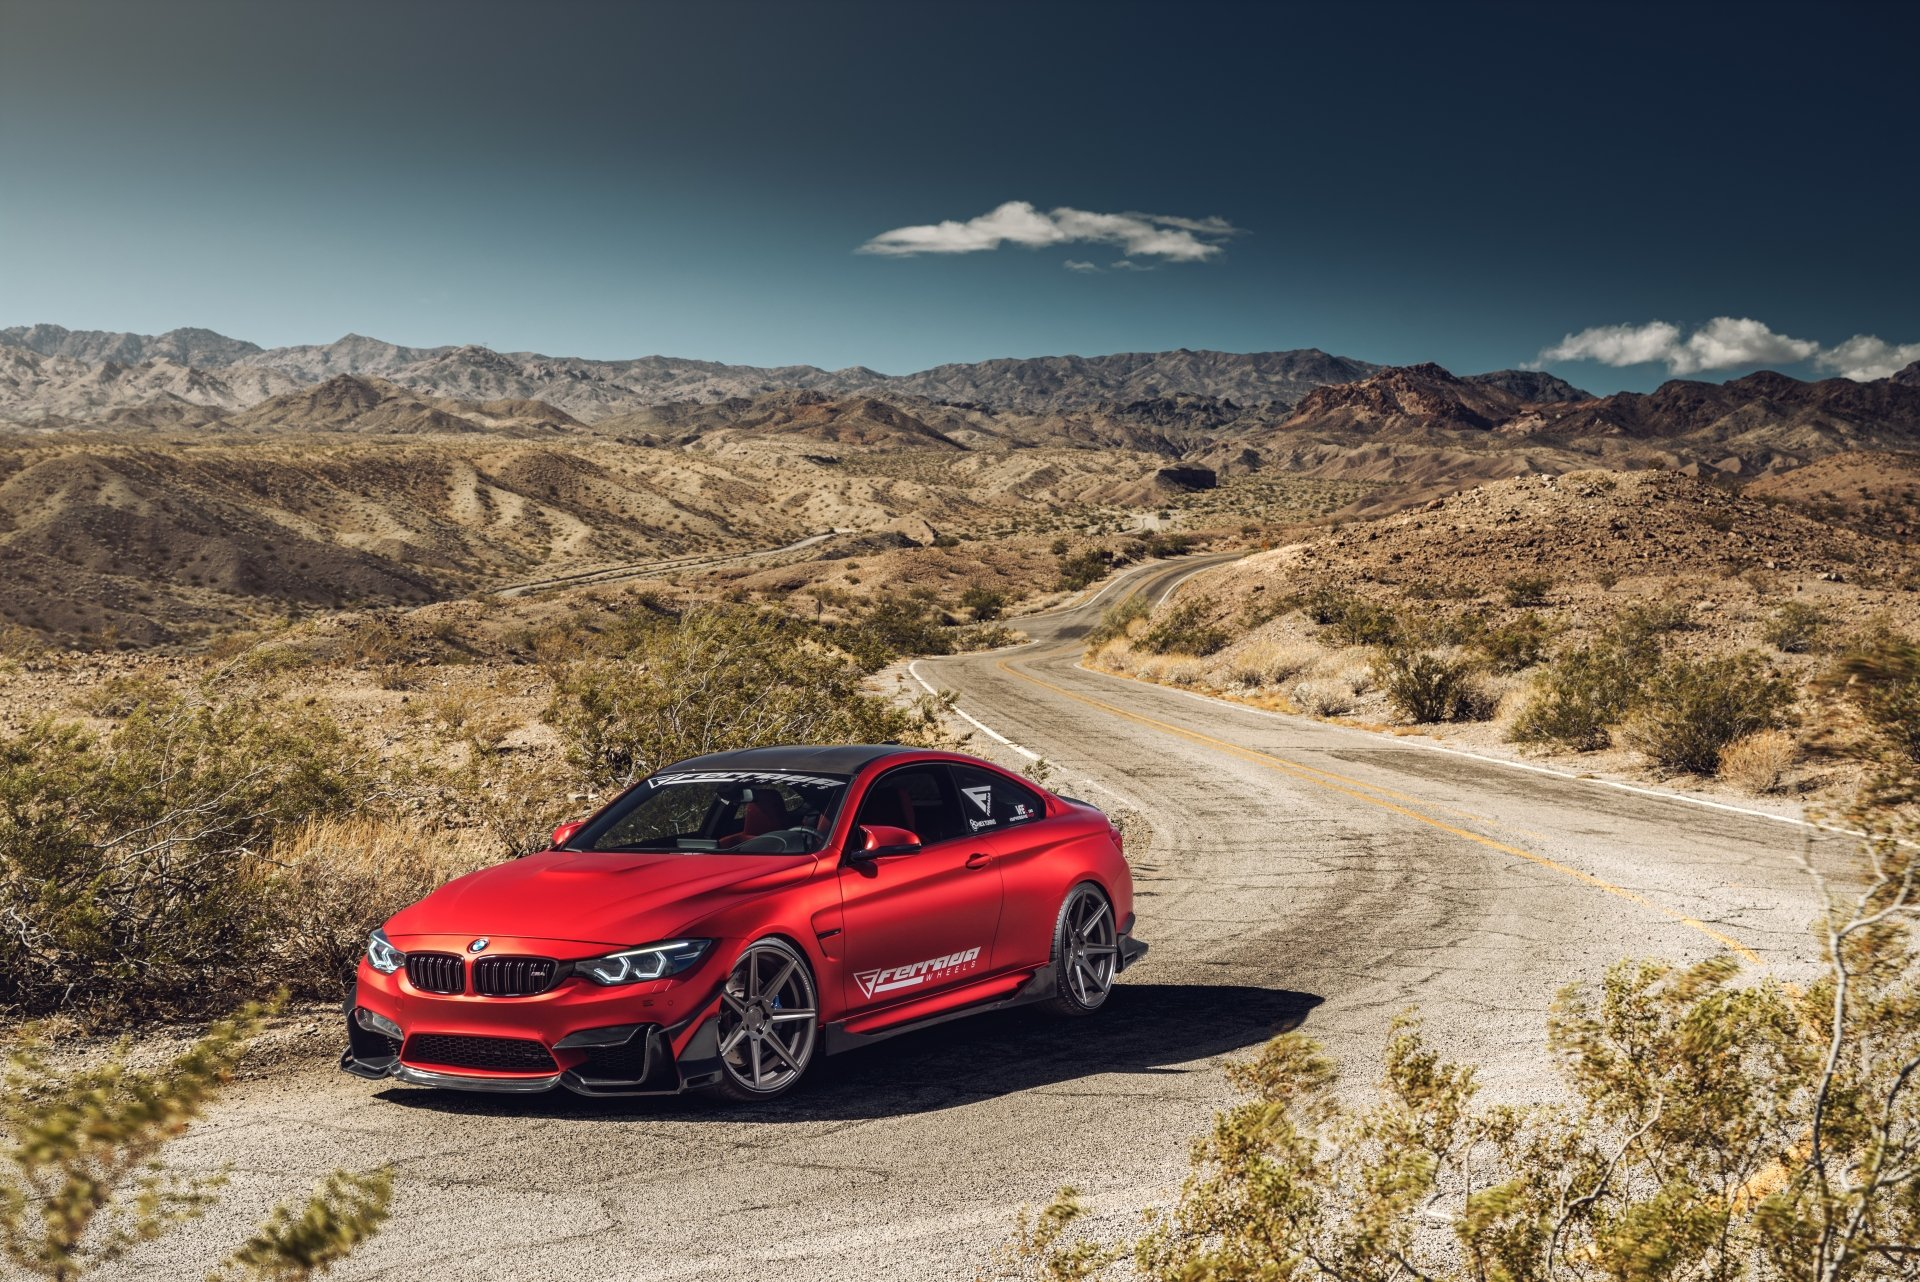 Vehicles - BMW M4  BMW Car Vehicle Sport Car Red Car Wallpaper